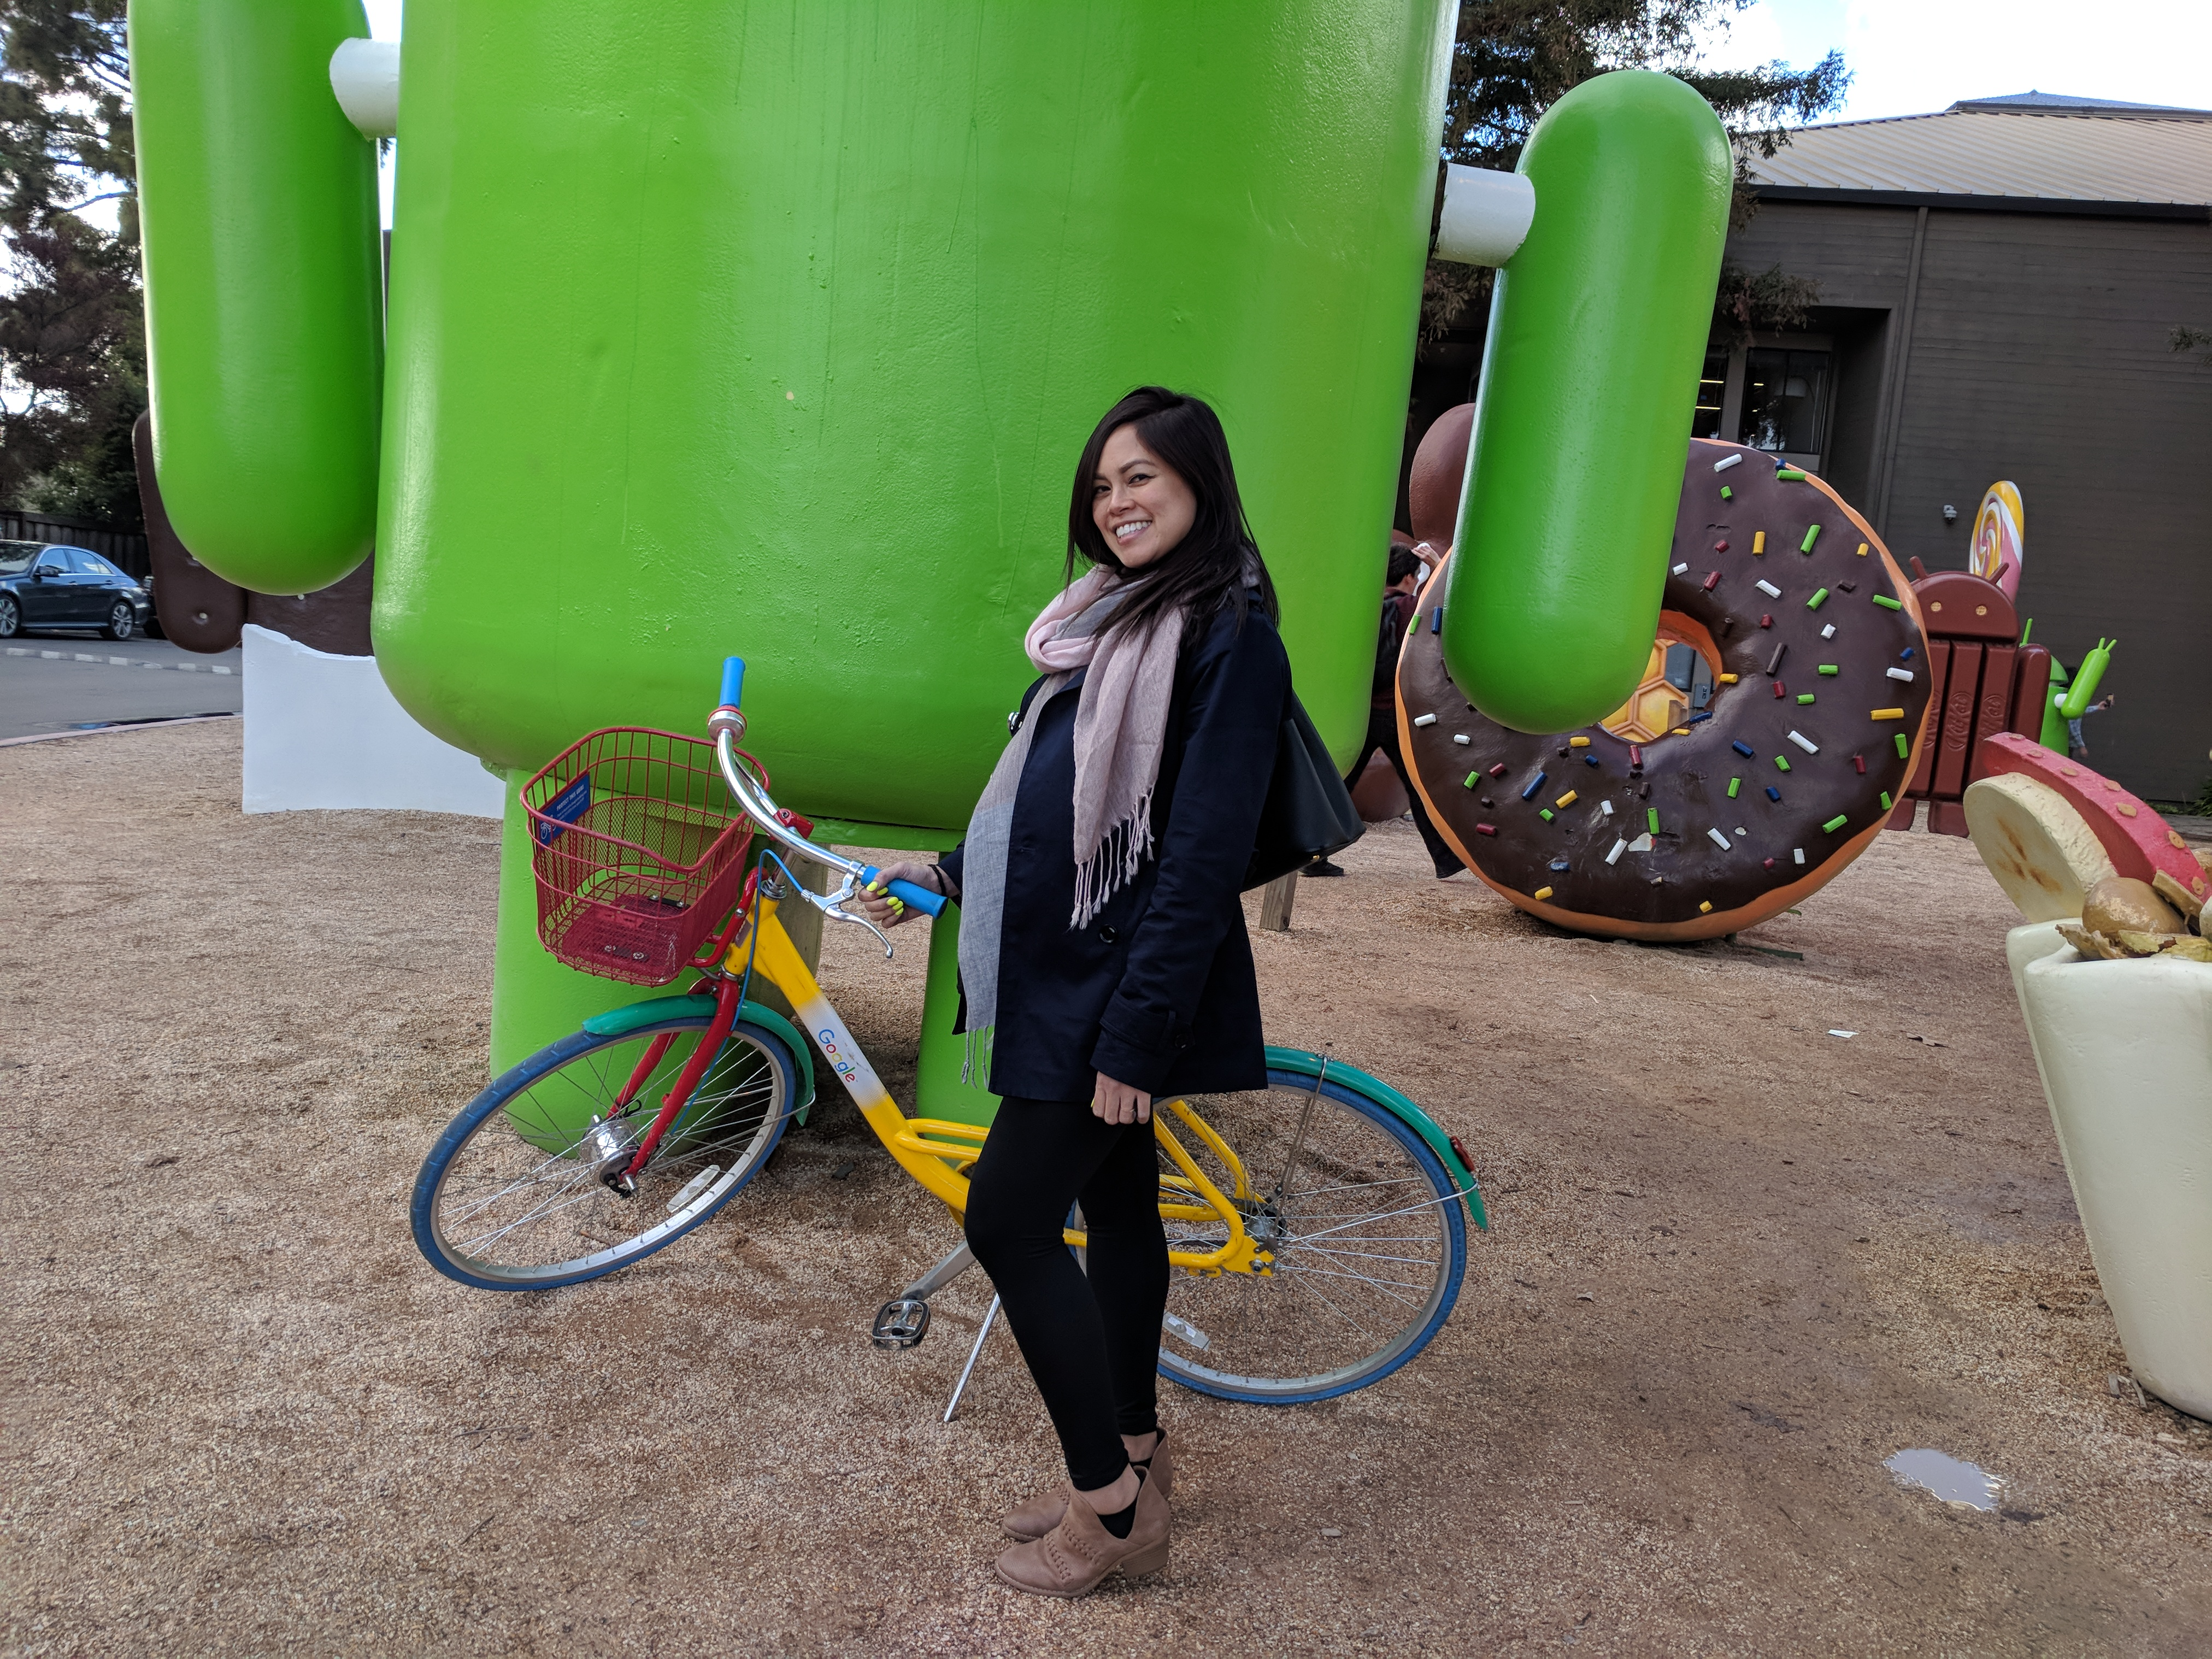 Yvonne Gando and a bicycle